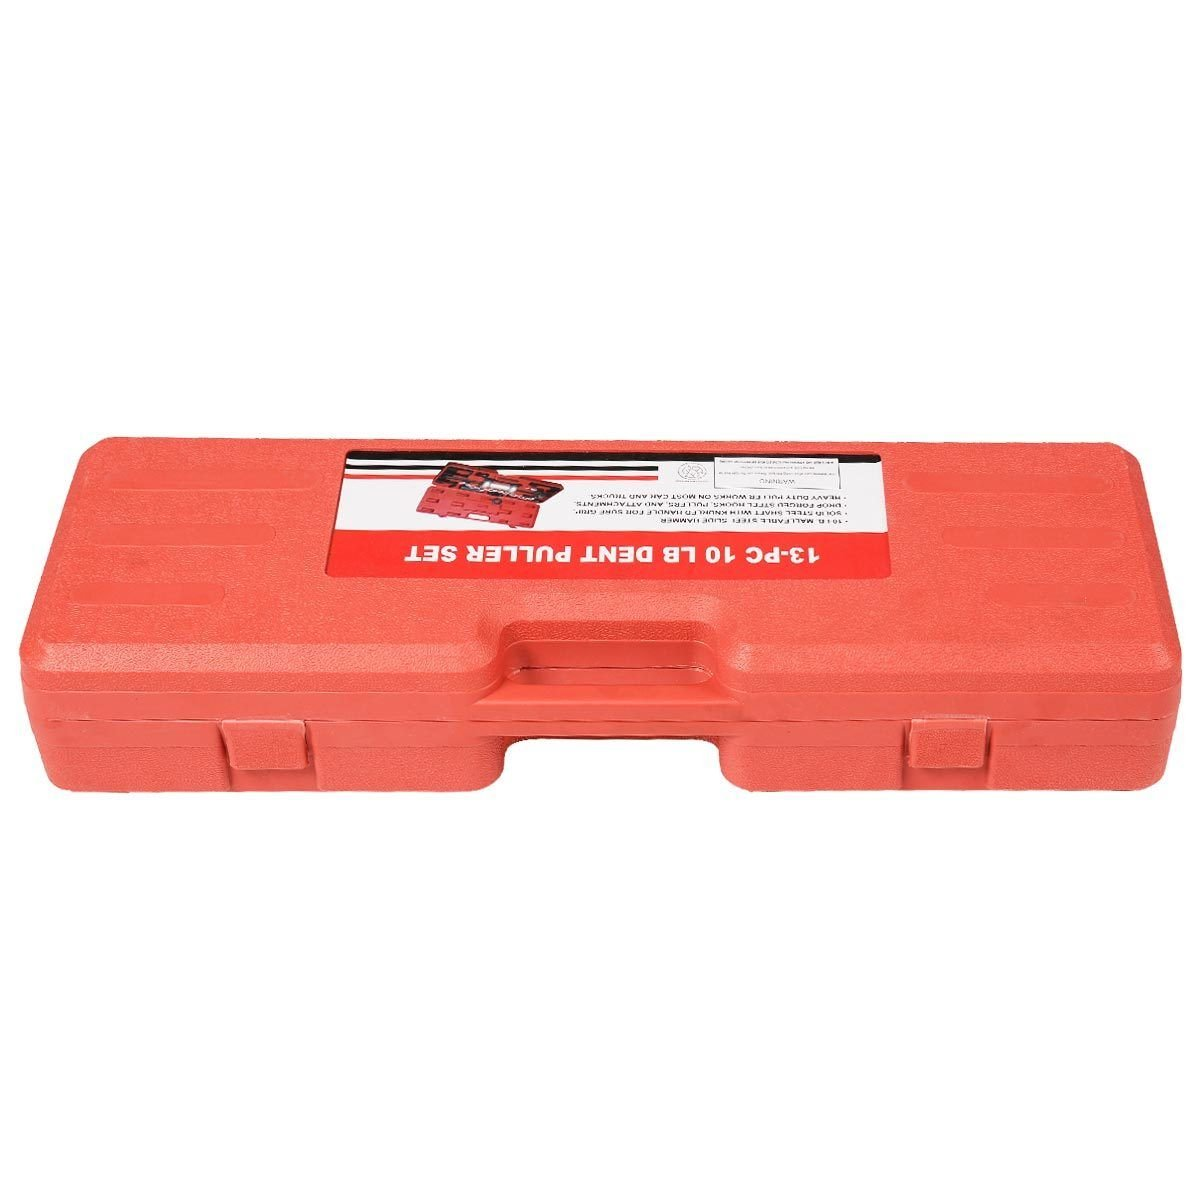 Super buy 13PC Dent Puller w/ Slide Hammer Auto Body Truck Repair Tool Kit HD by Super buy (Image #5)